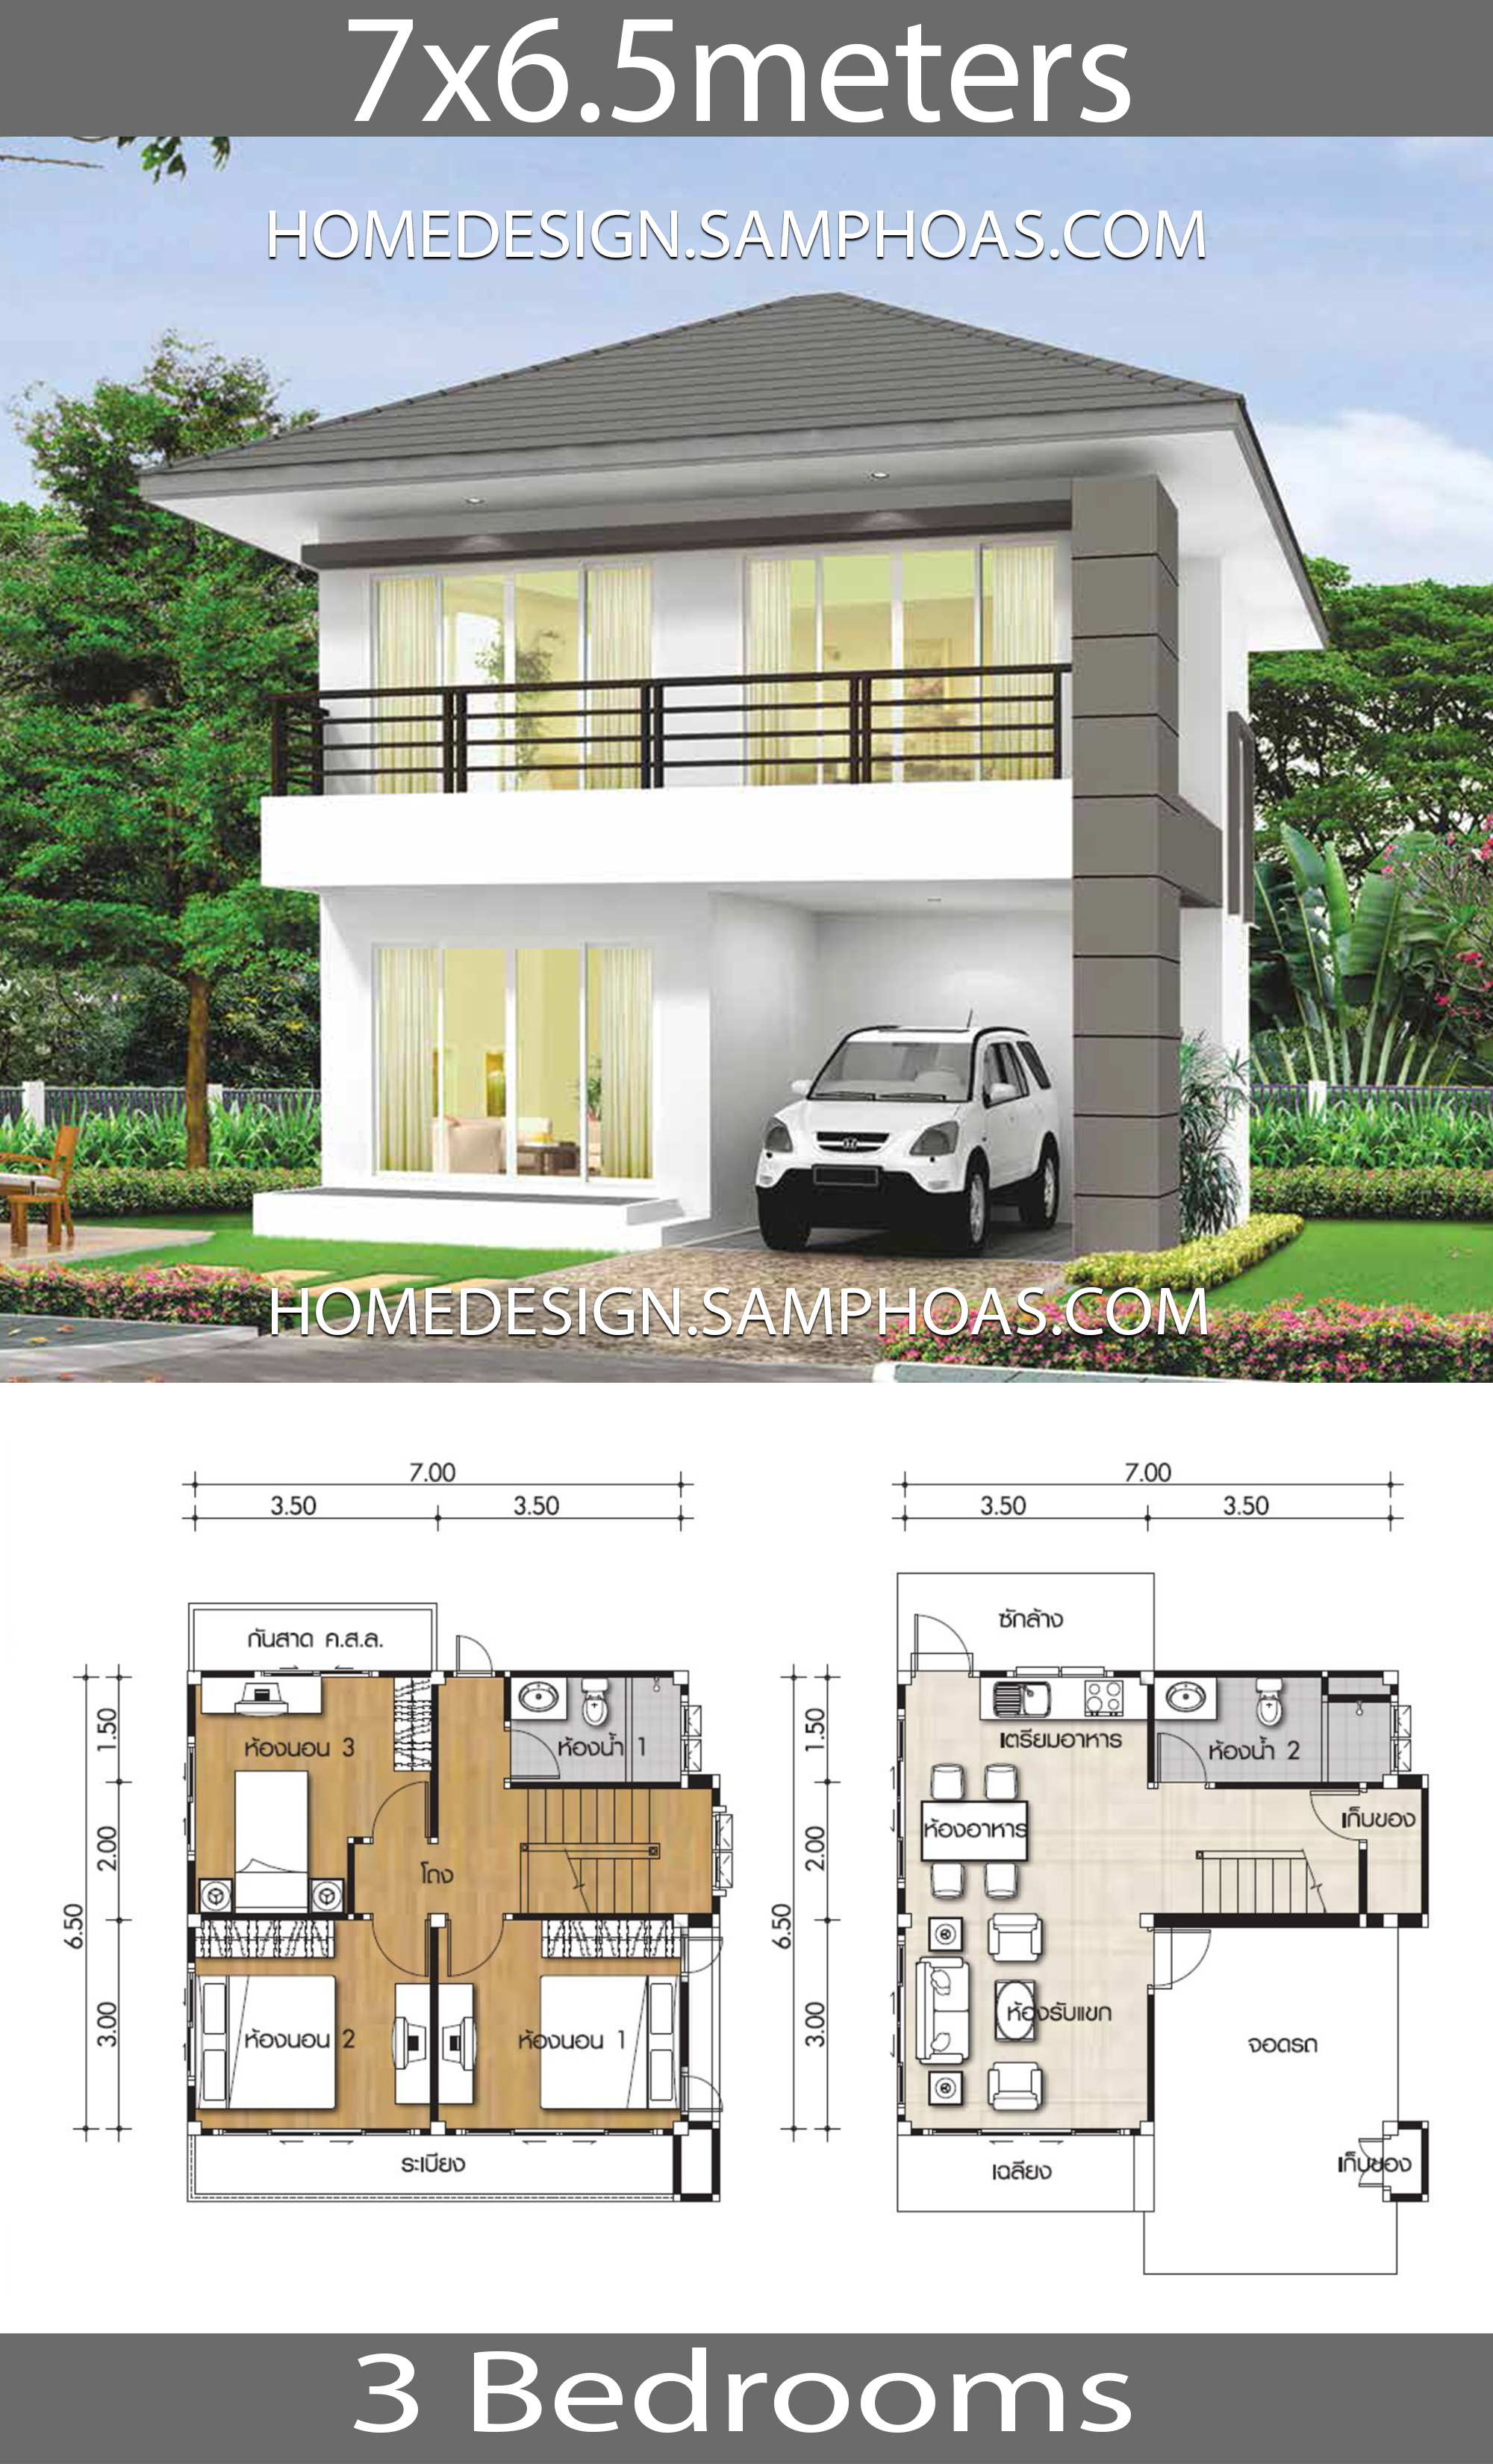 Small Home Plans 7x6 5m With 3 Bedrooms House Plans 3d